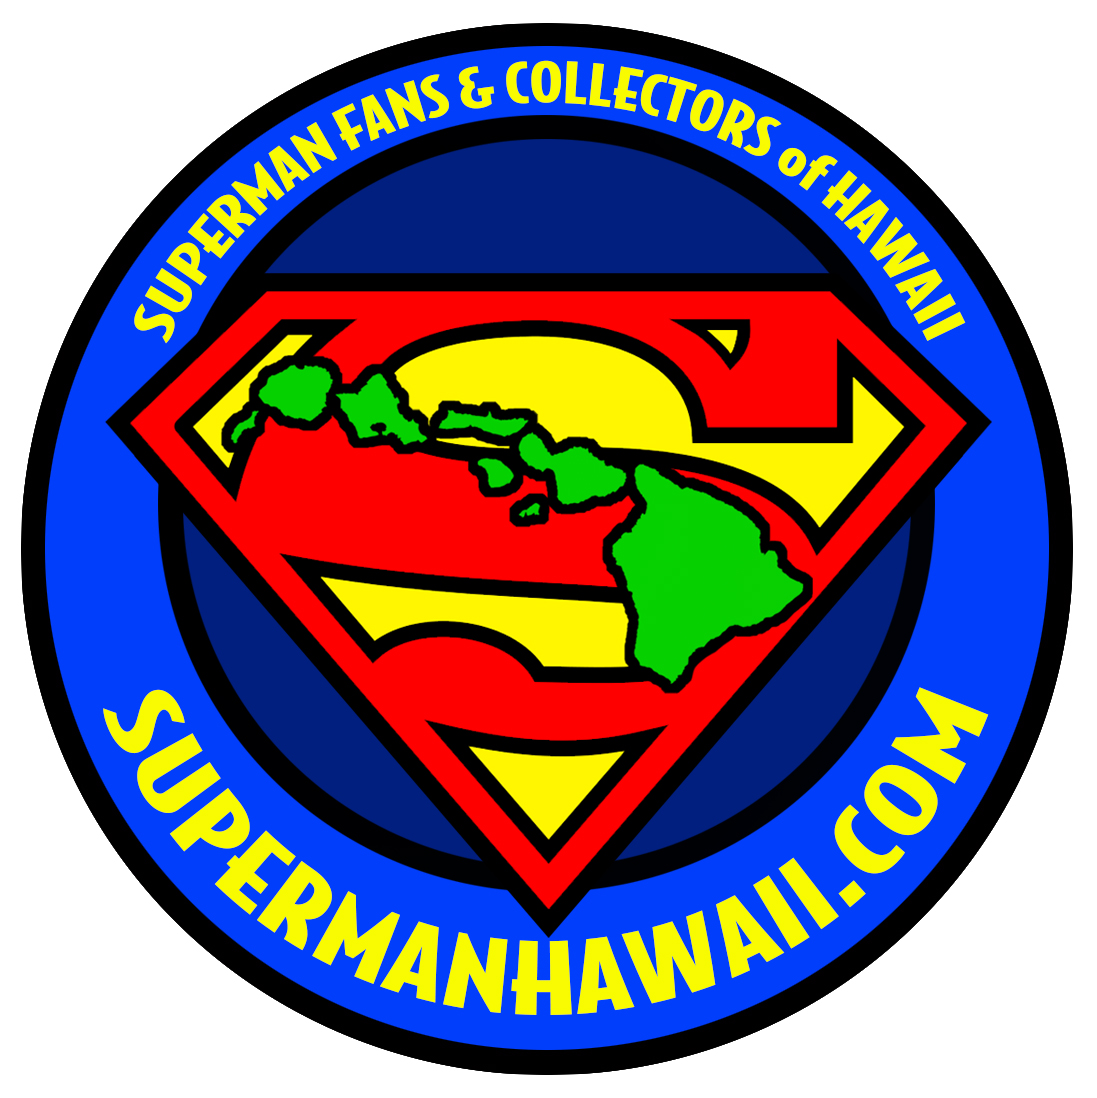 SupermanHawaiiCLUBpatchfull